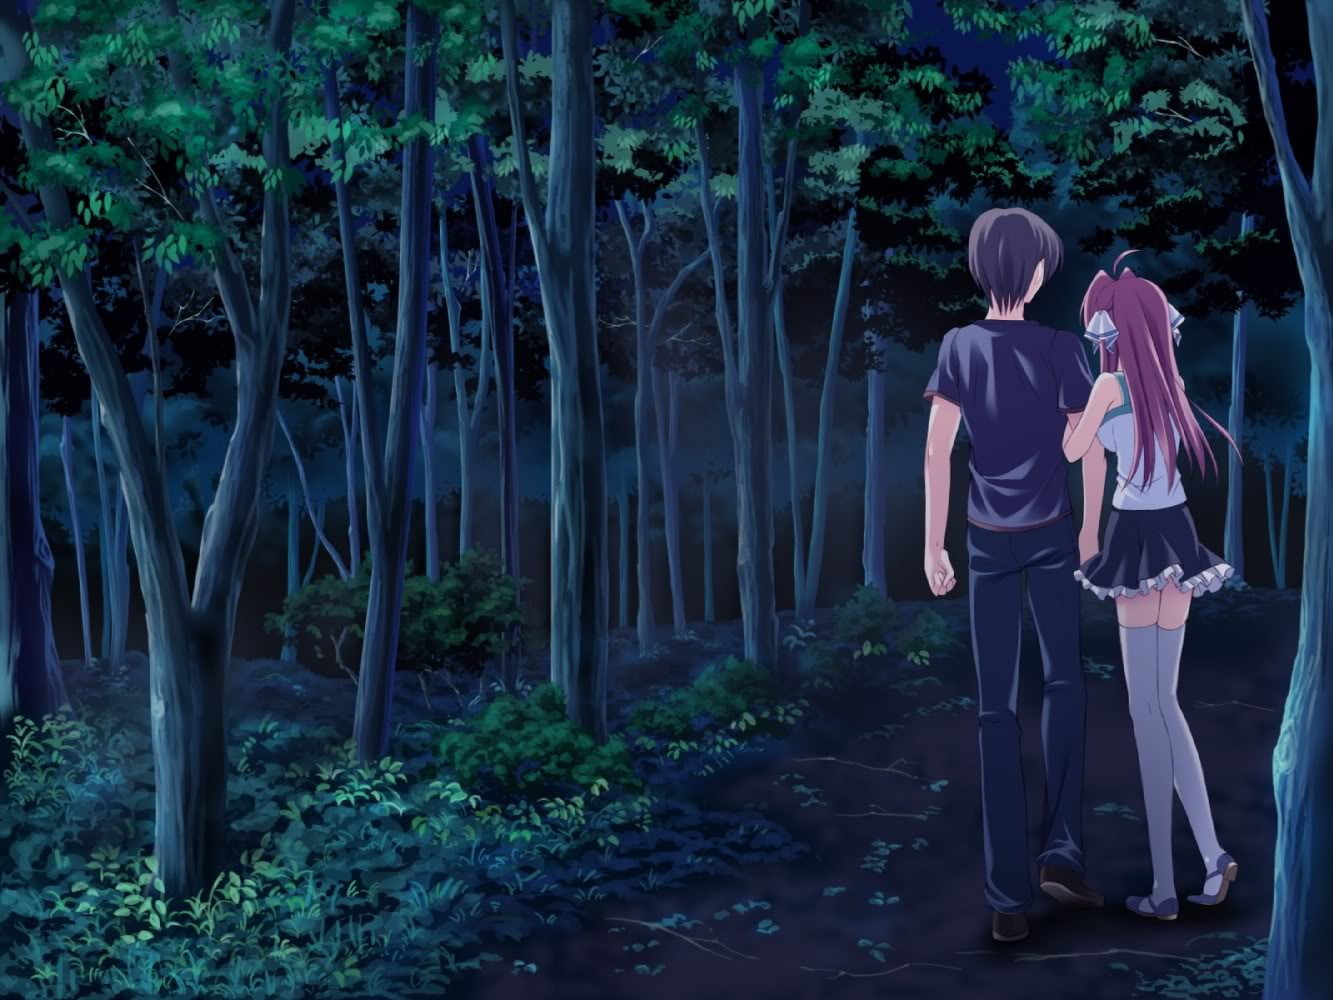 Anime Sweet Couple Wallpaper 1333x1000 Download wallpapers page 1333x1000